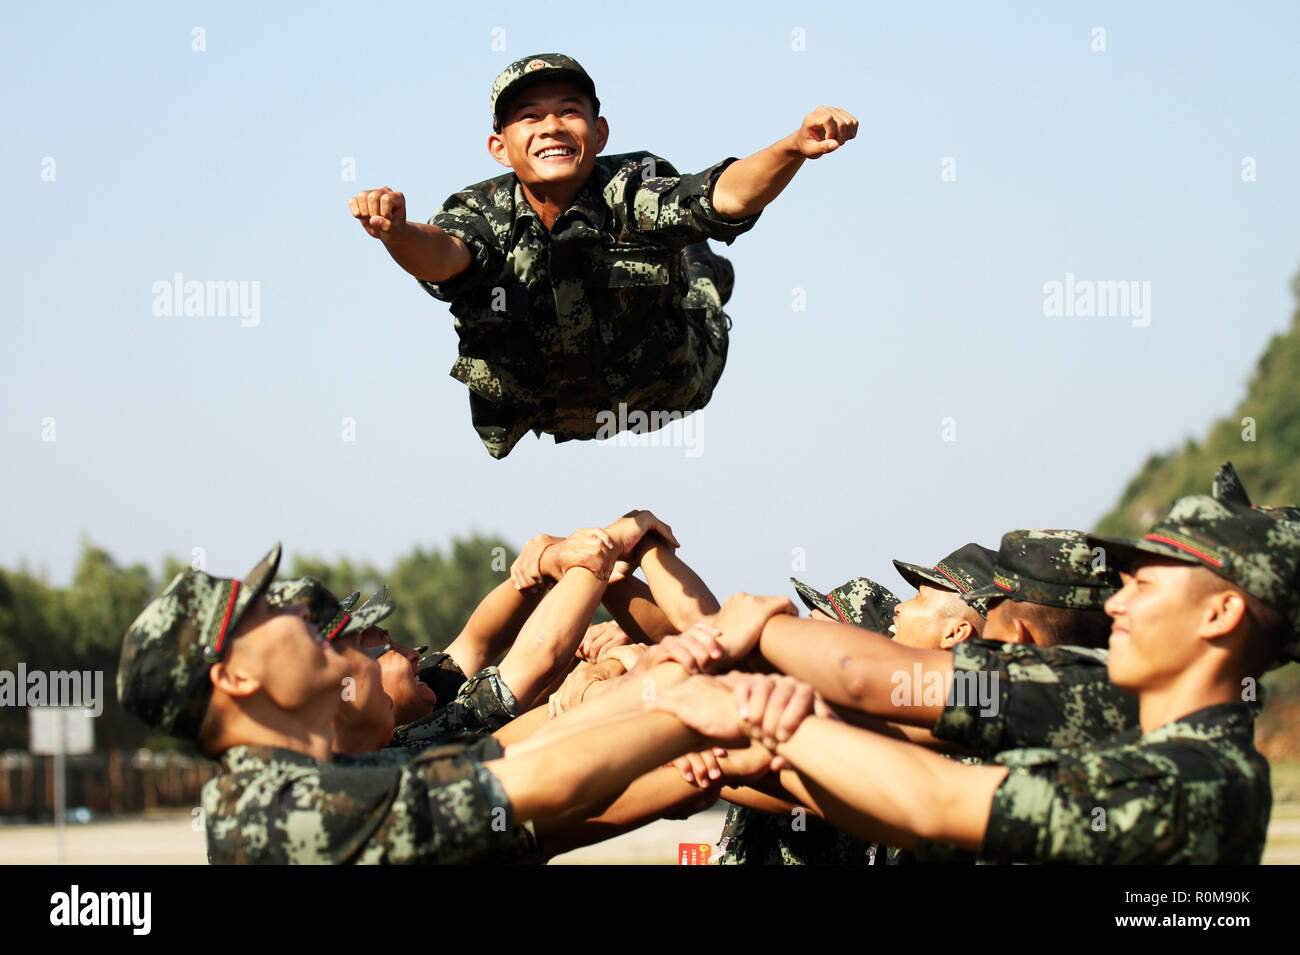 Chongzuo, Chongzuo, China. 6th Nov, 2018. Chongzuo, CHINA-Soldiers attend military training in Chongzuo, southwest China's Guangxi. Credit: SIPA Asia/ZUMA Wire/Alamy Live News - Stock Image